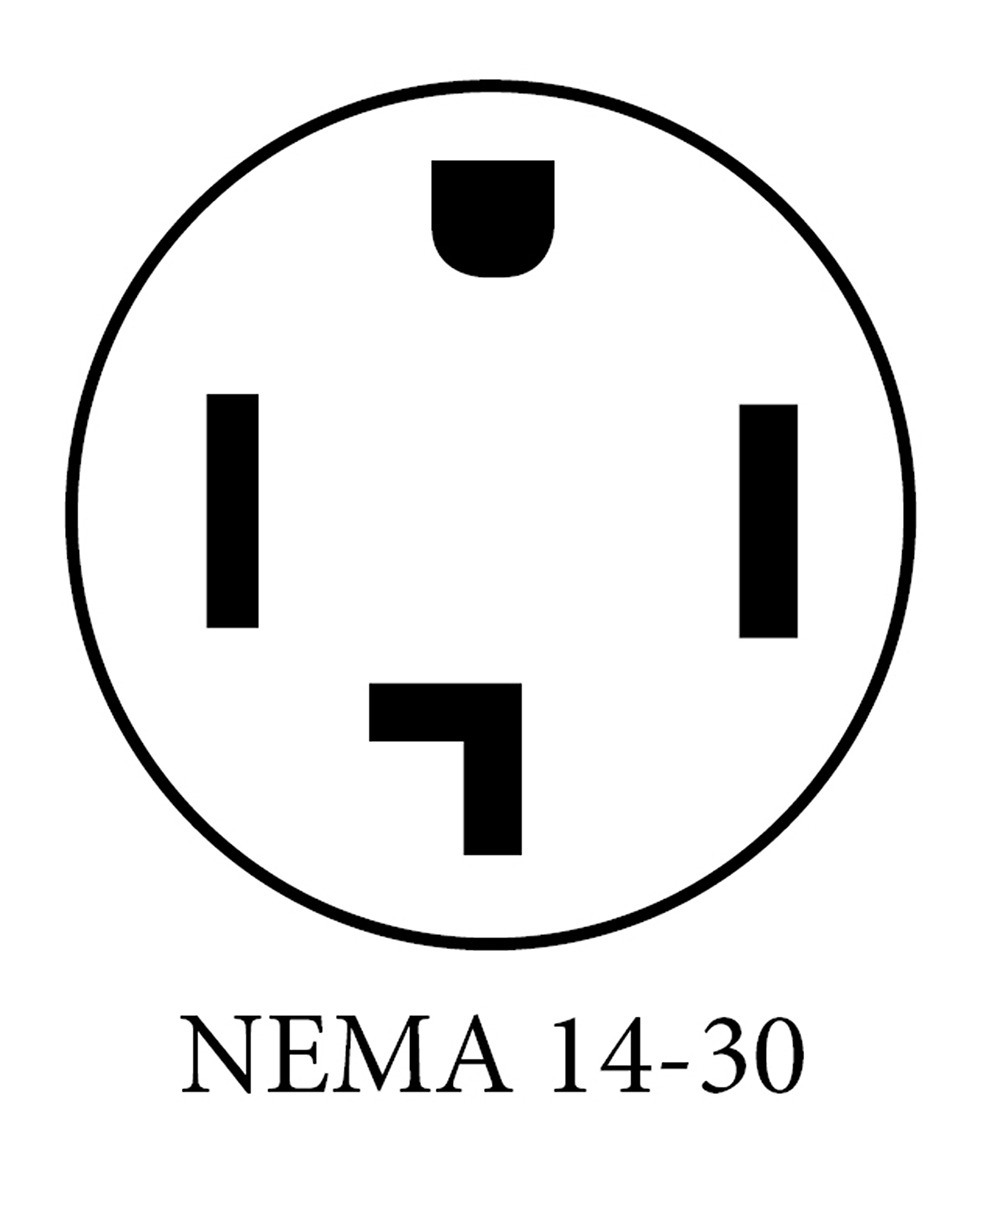 NEMA 14 30 PLUG DIAGRAM what plugs are available on ev charging stations? nema 6 50r wiring diagram at eliteediting.co